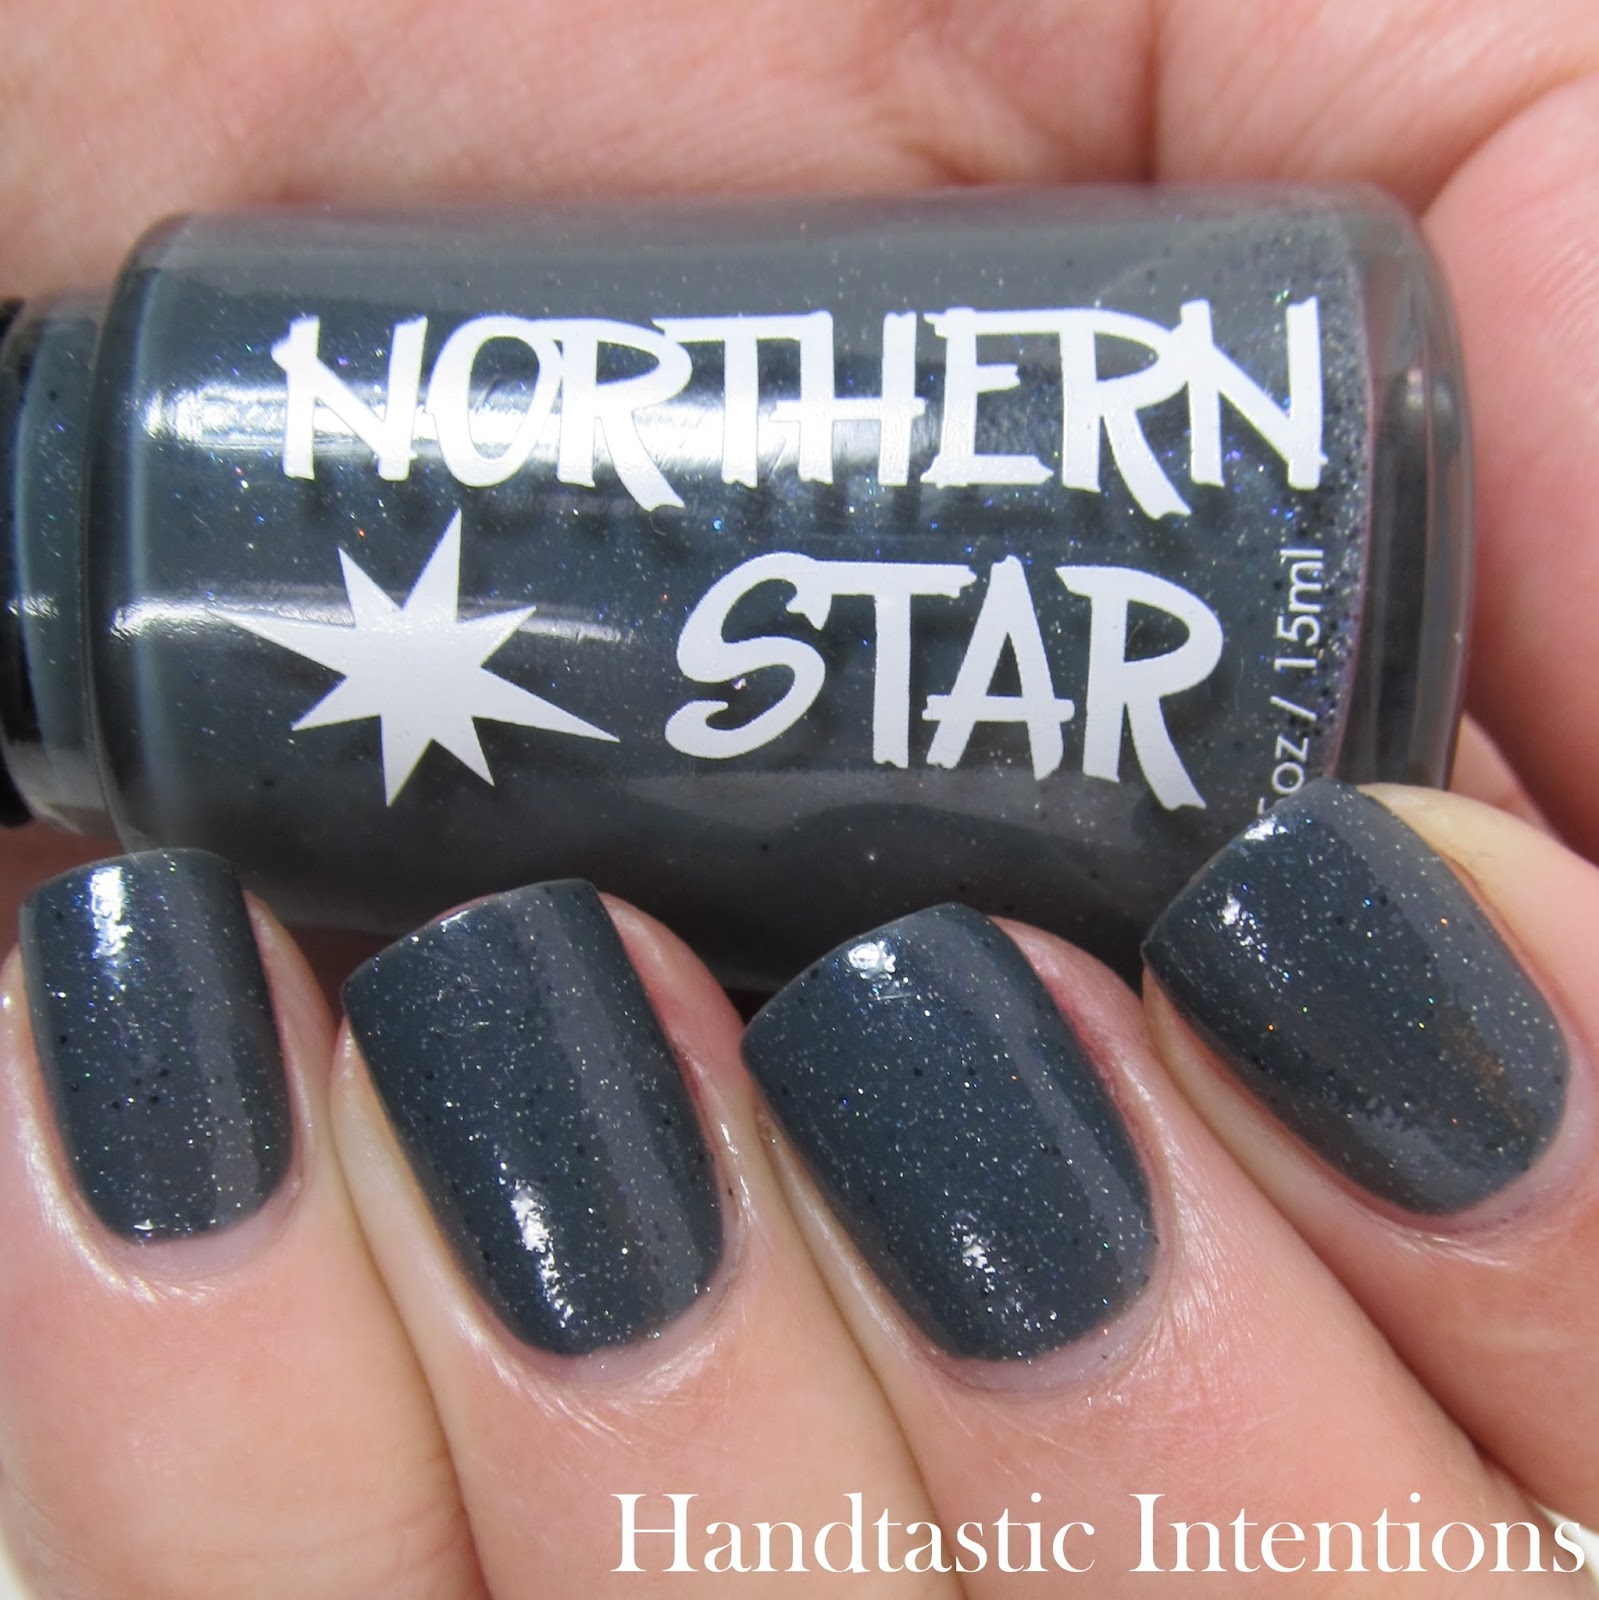 Northern-Star-Polish-One-With-The-Shadows